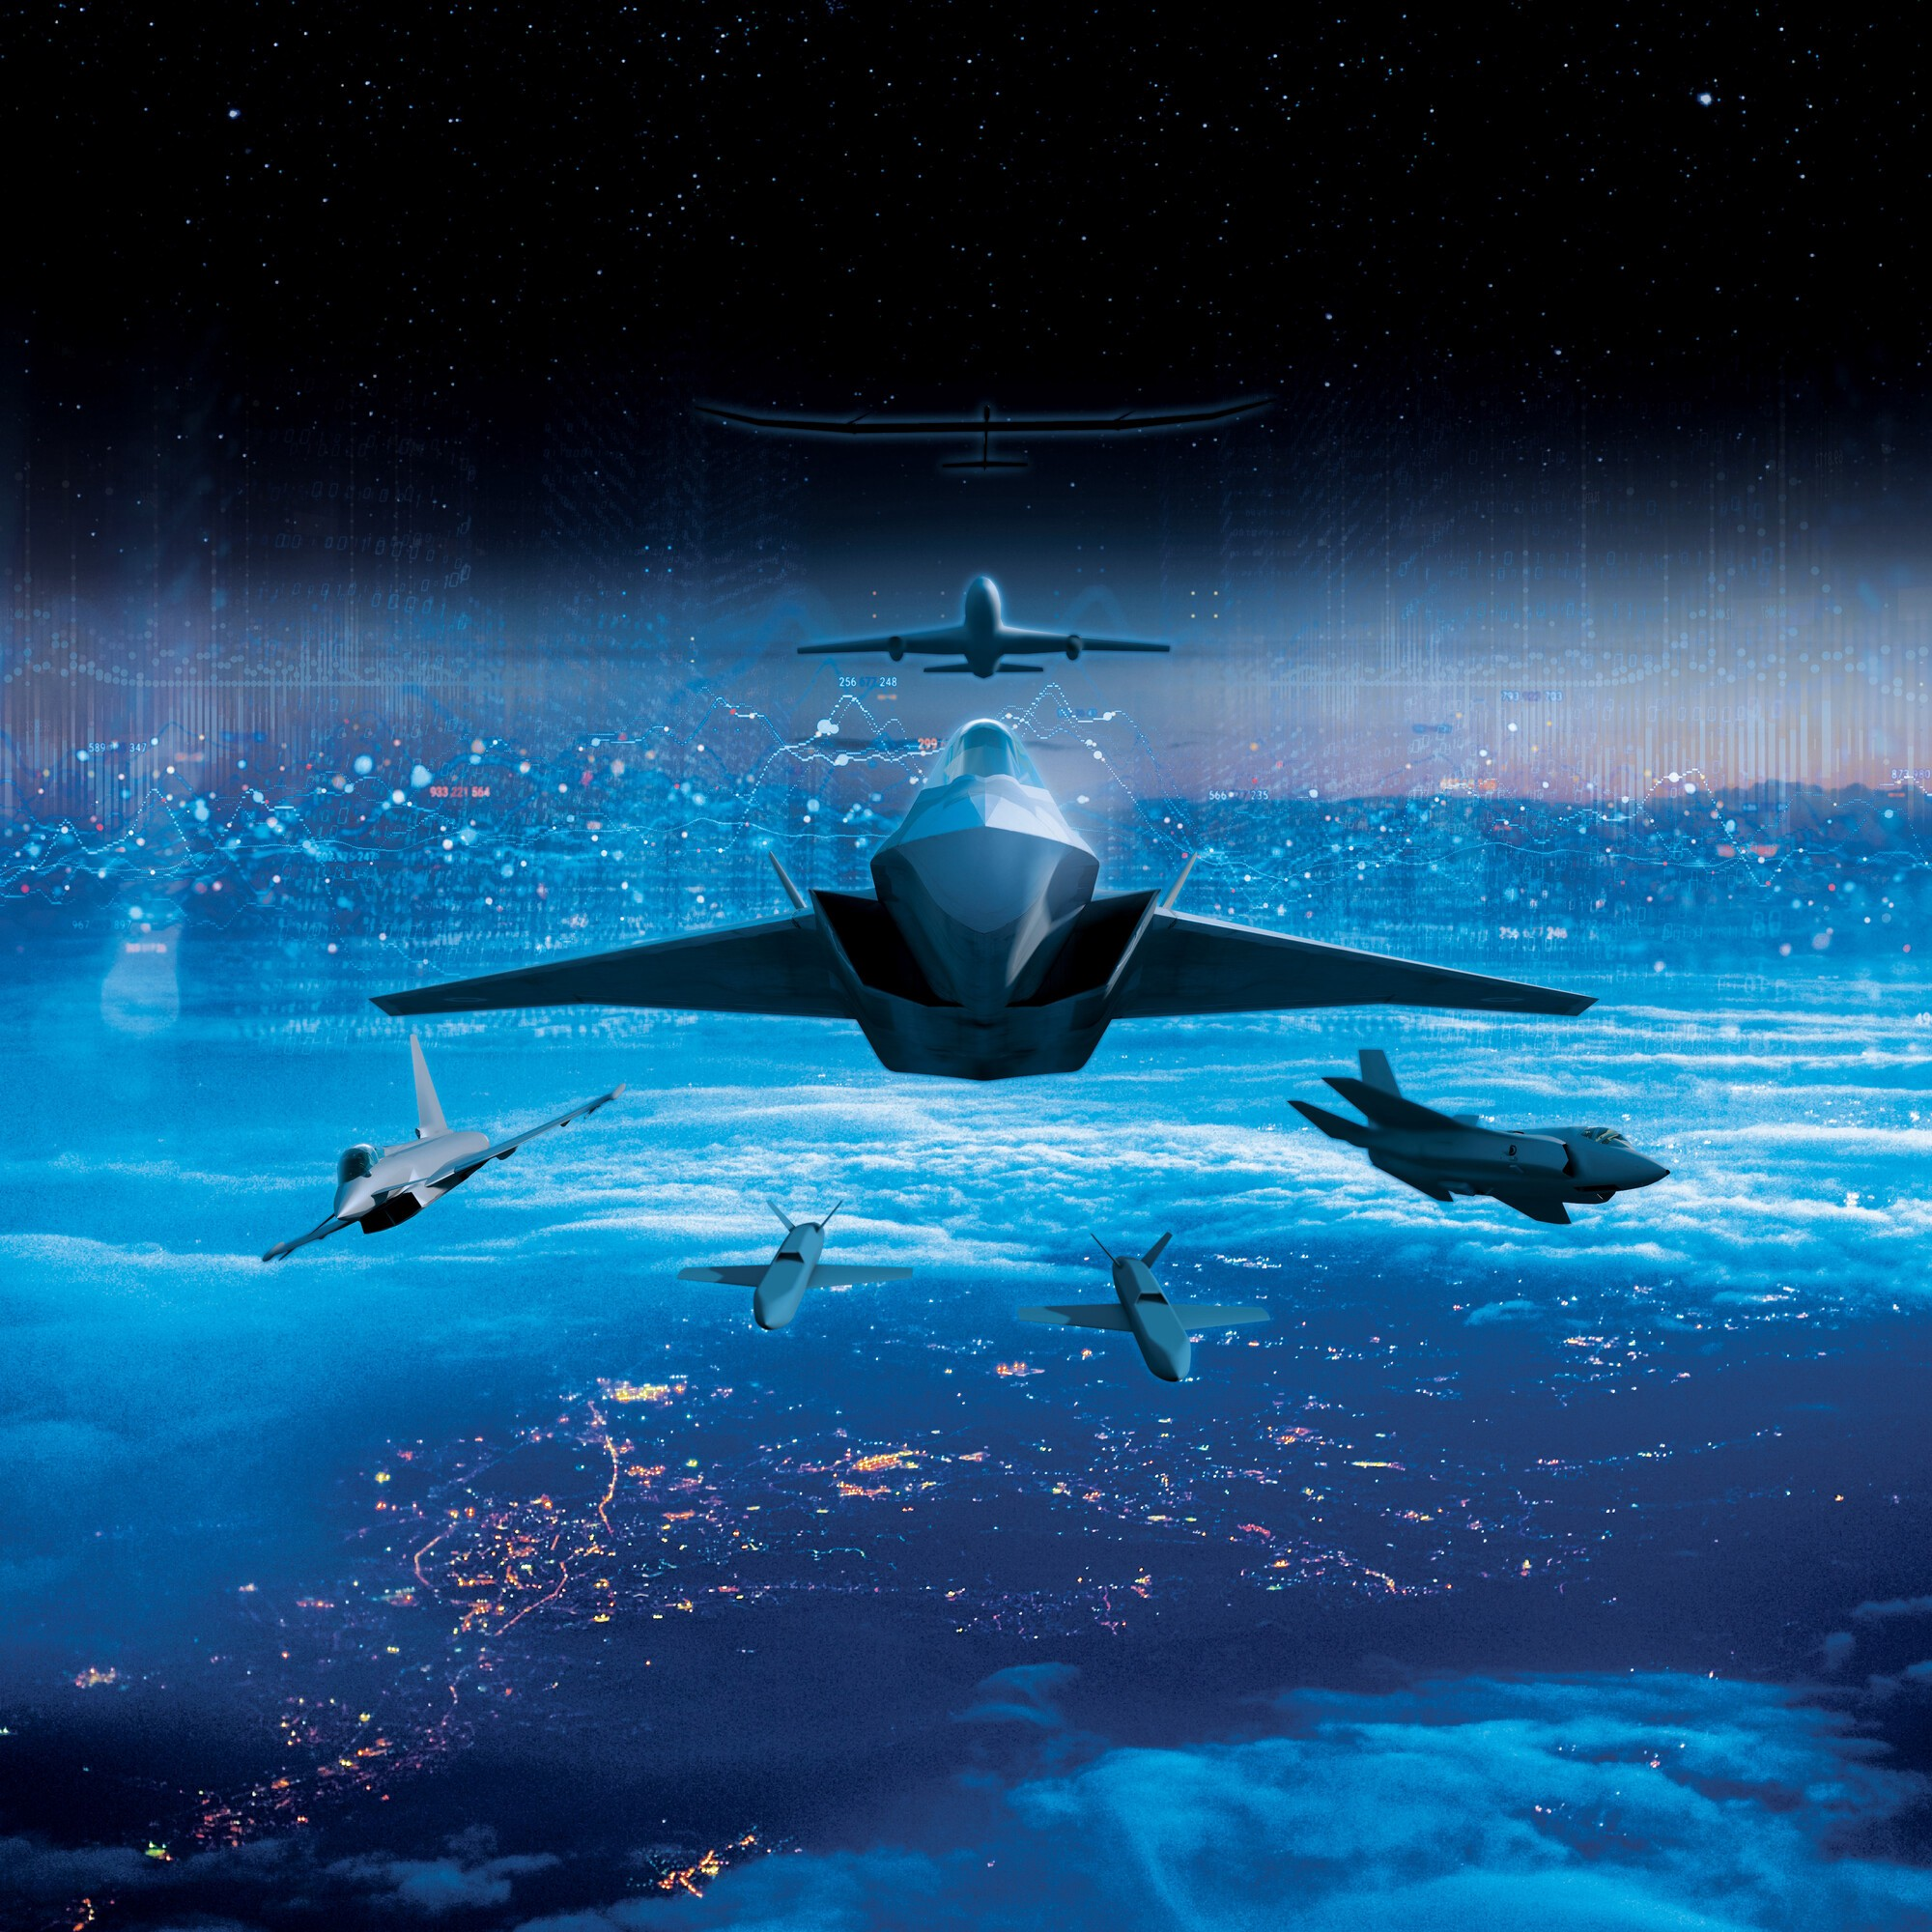 Tempest and the Future Combat Air System graphic